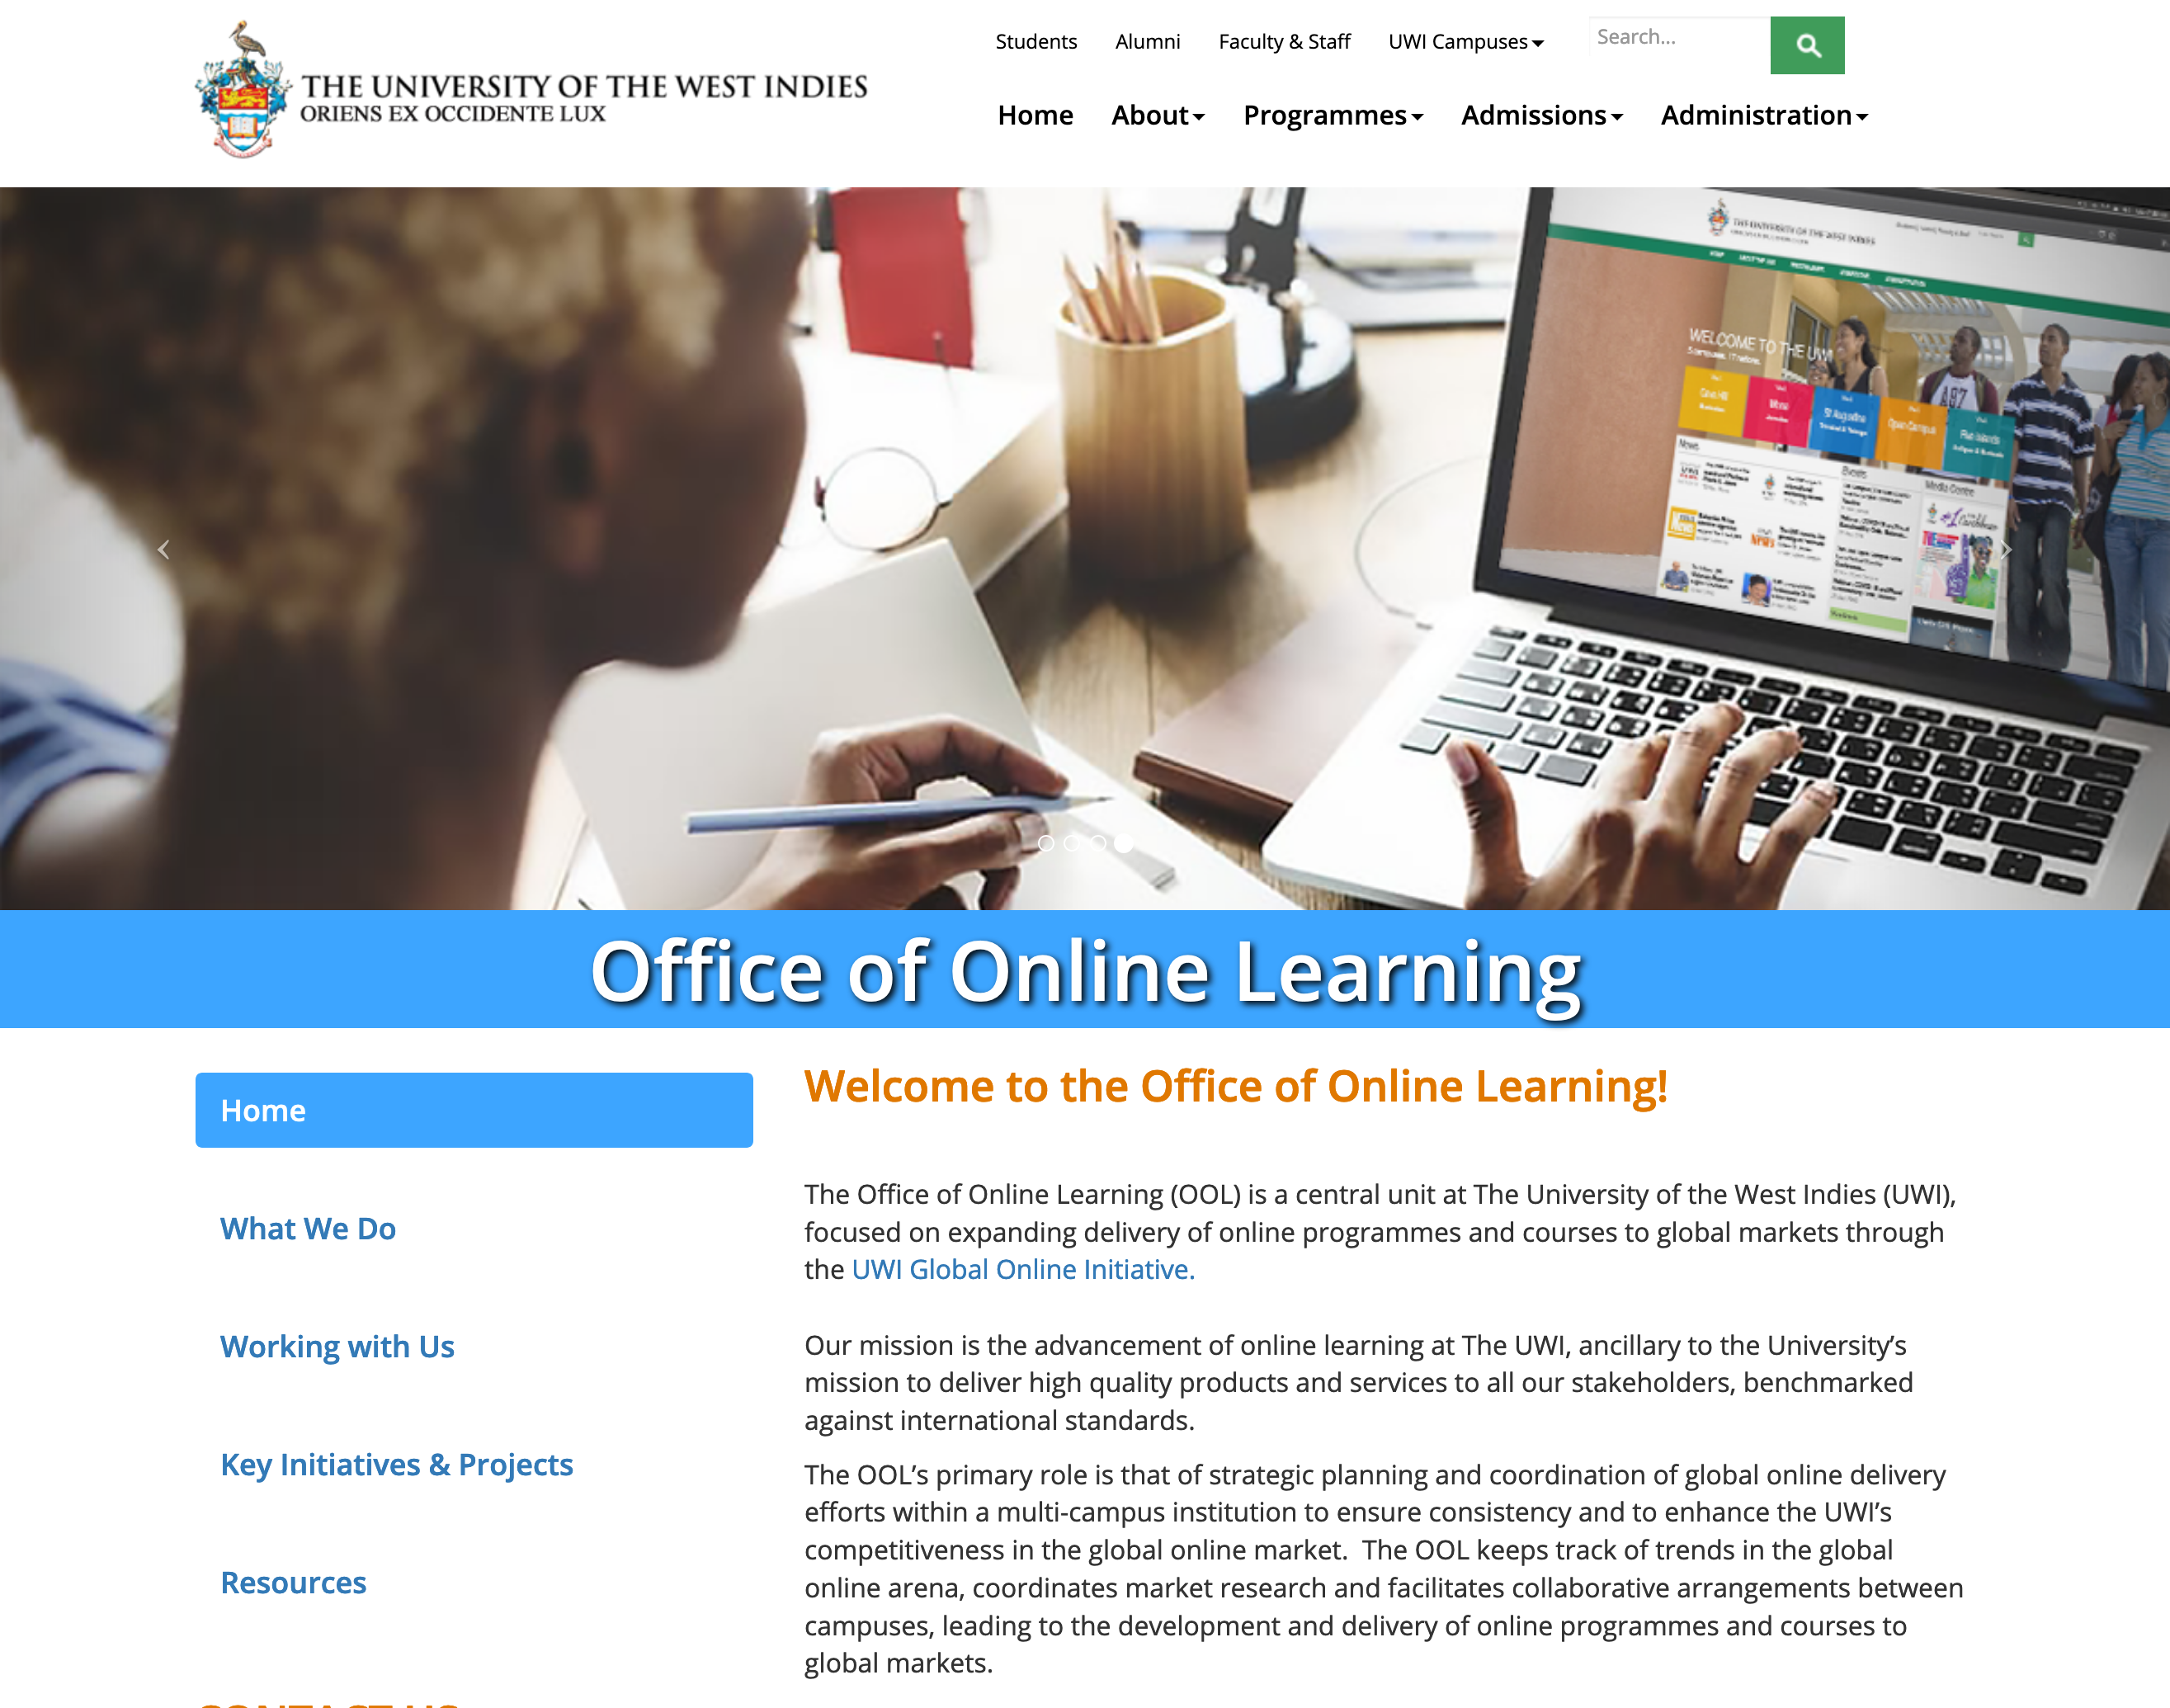 Screenshot of the Office of Online Learning Website